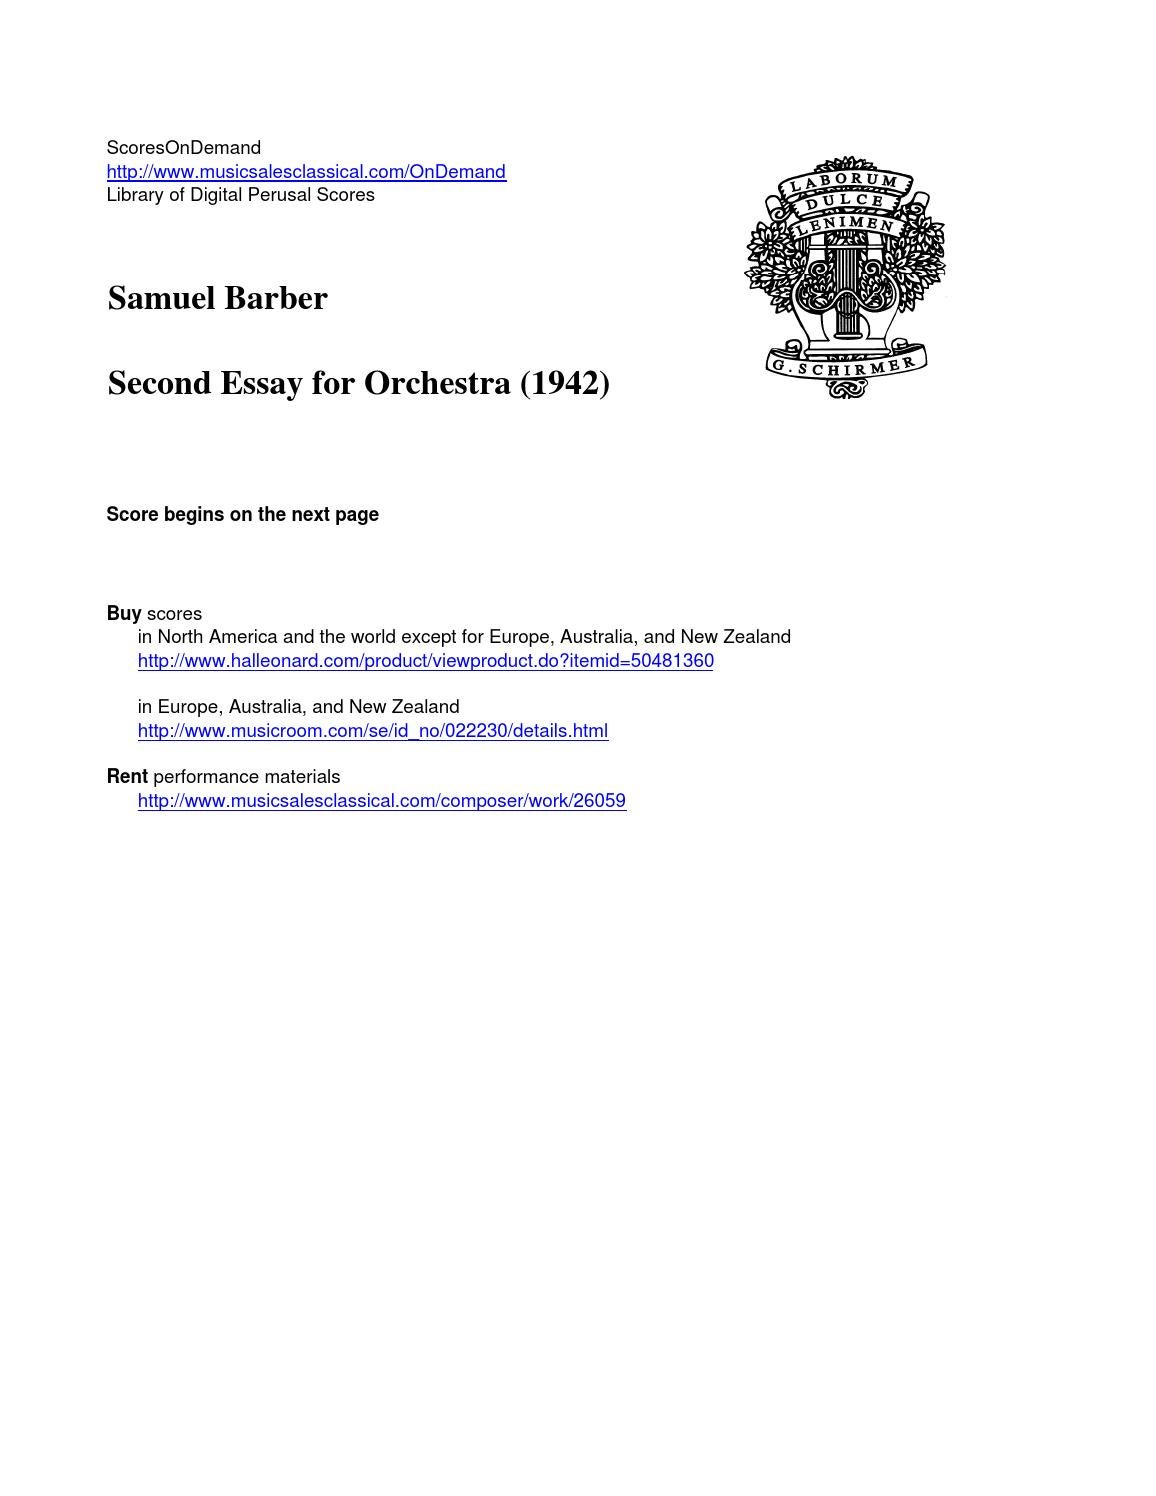 samuel barber second essay for orchestra music s second essay 26059 3 years ago scoresondemand